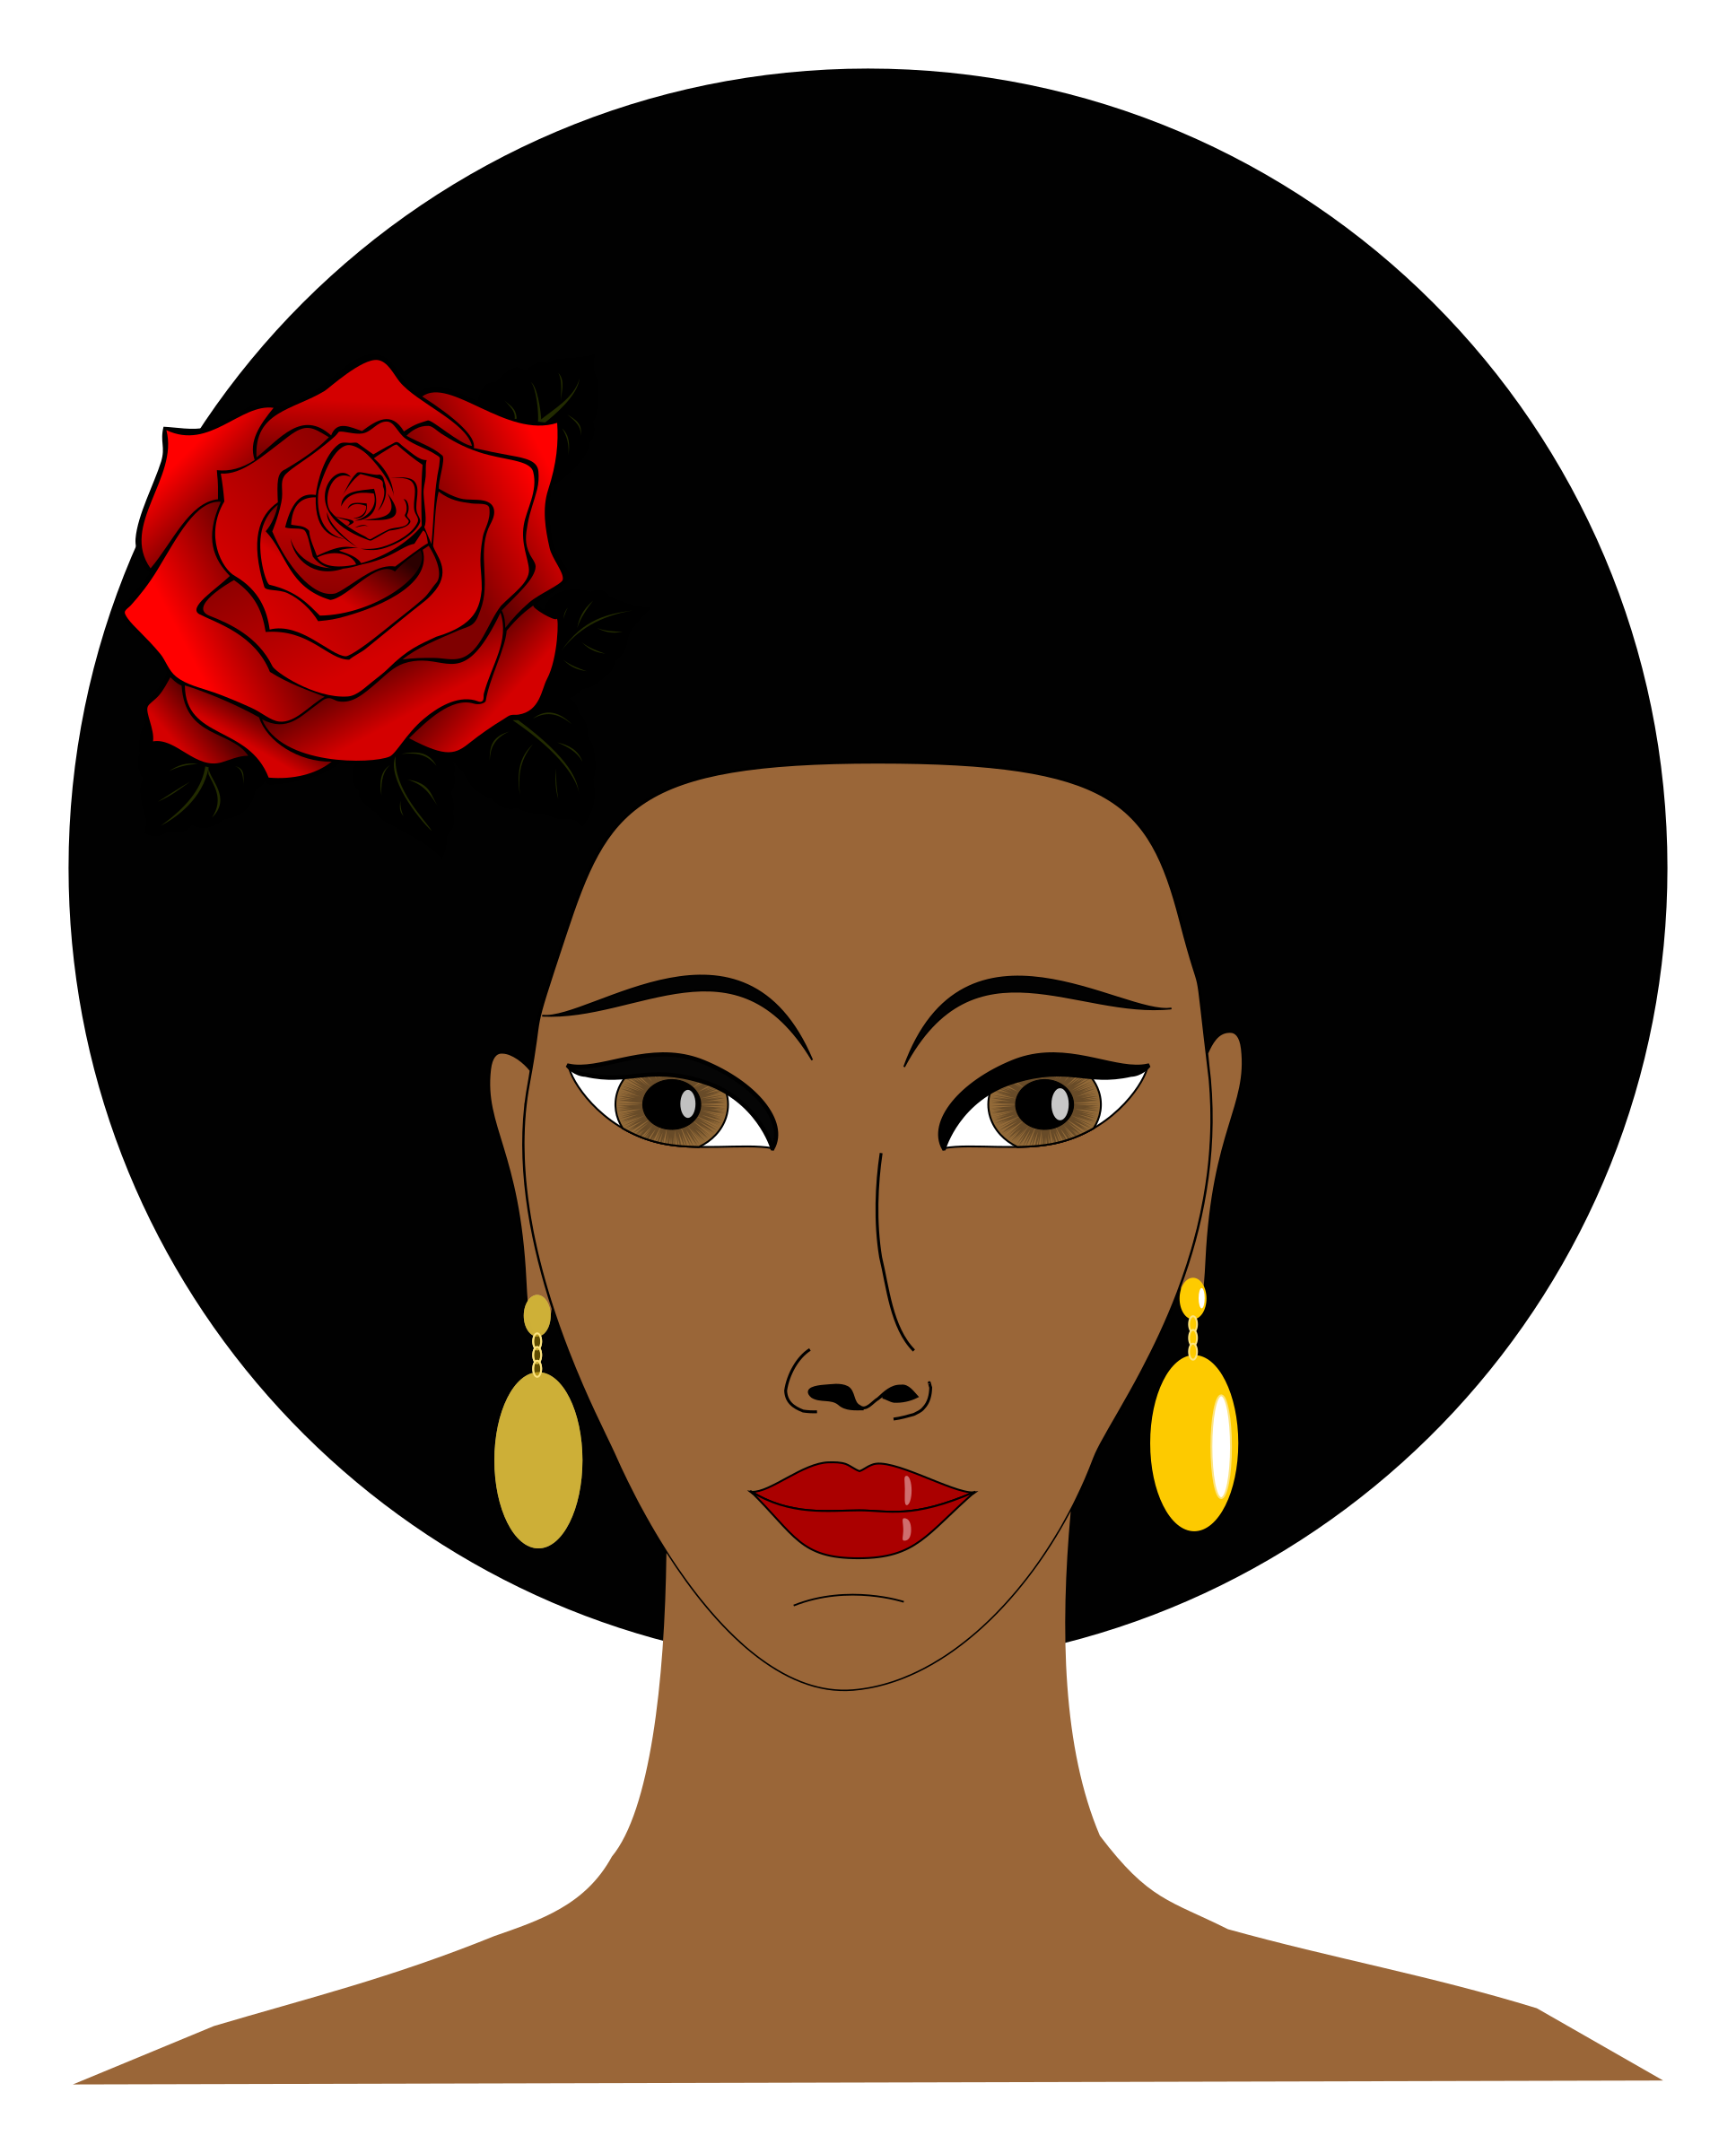 Black woman with a rose by bardo